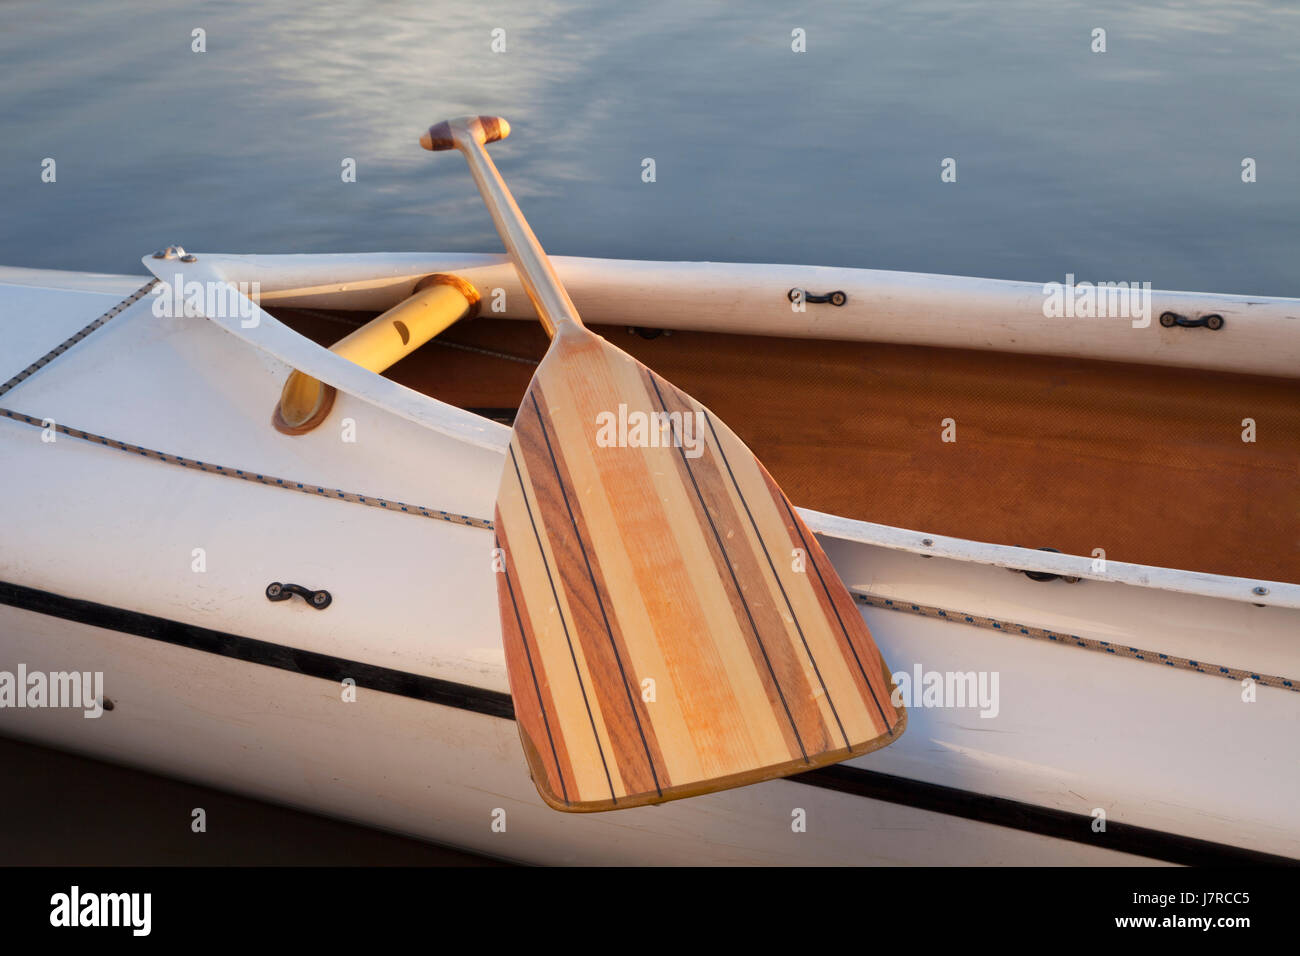 Sport Sports Wood Paddle Boat Deck Canoe Water Rowing Sailing